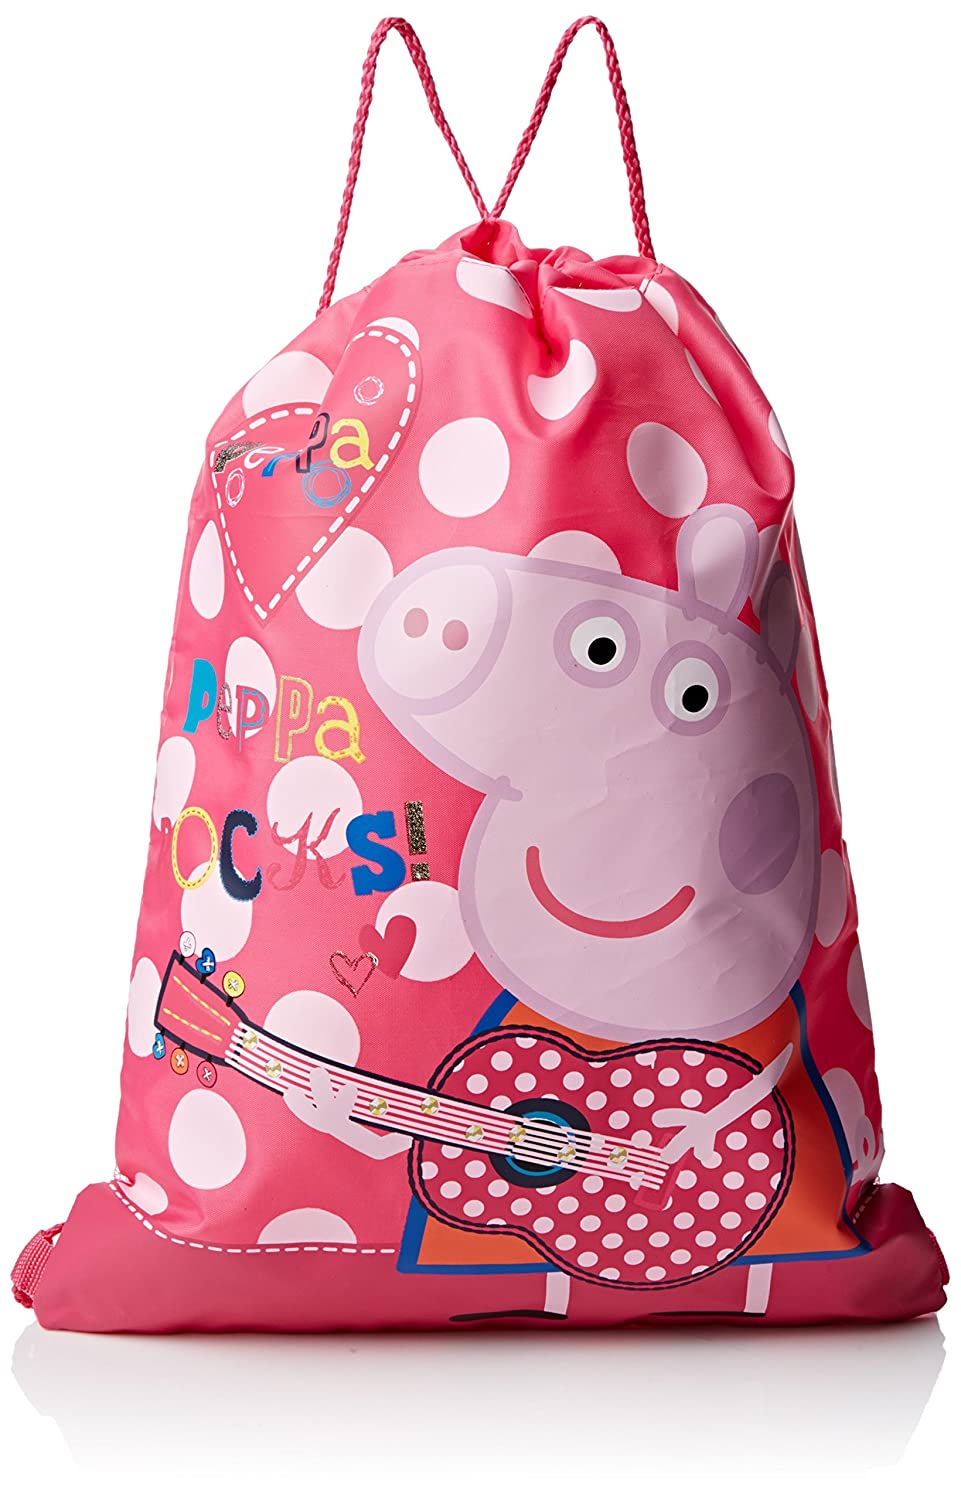 Peppa Pig Rocks Trainer Bag Trade Mark Collections PEPPA003007 Cartoons & Comics